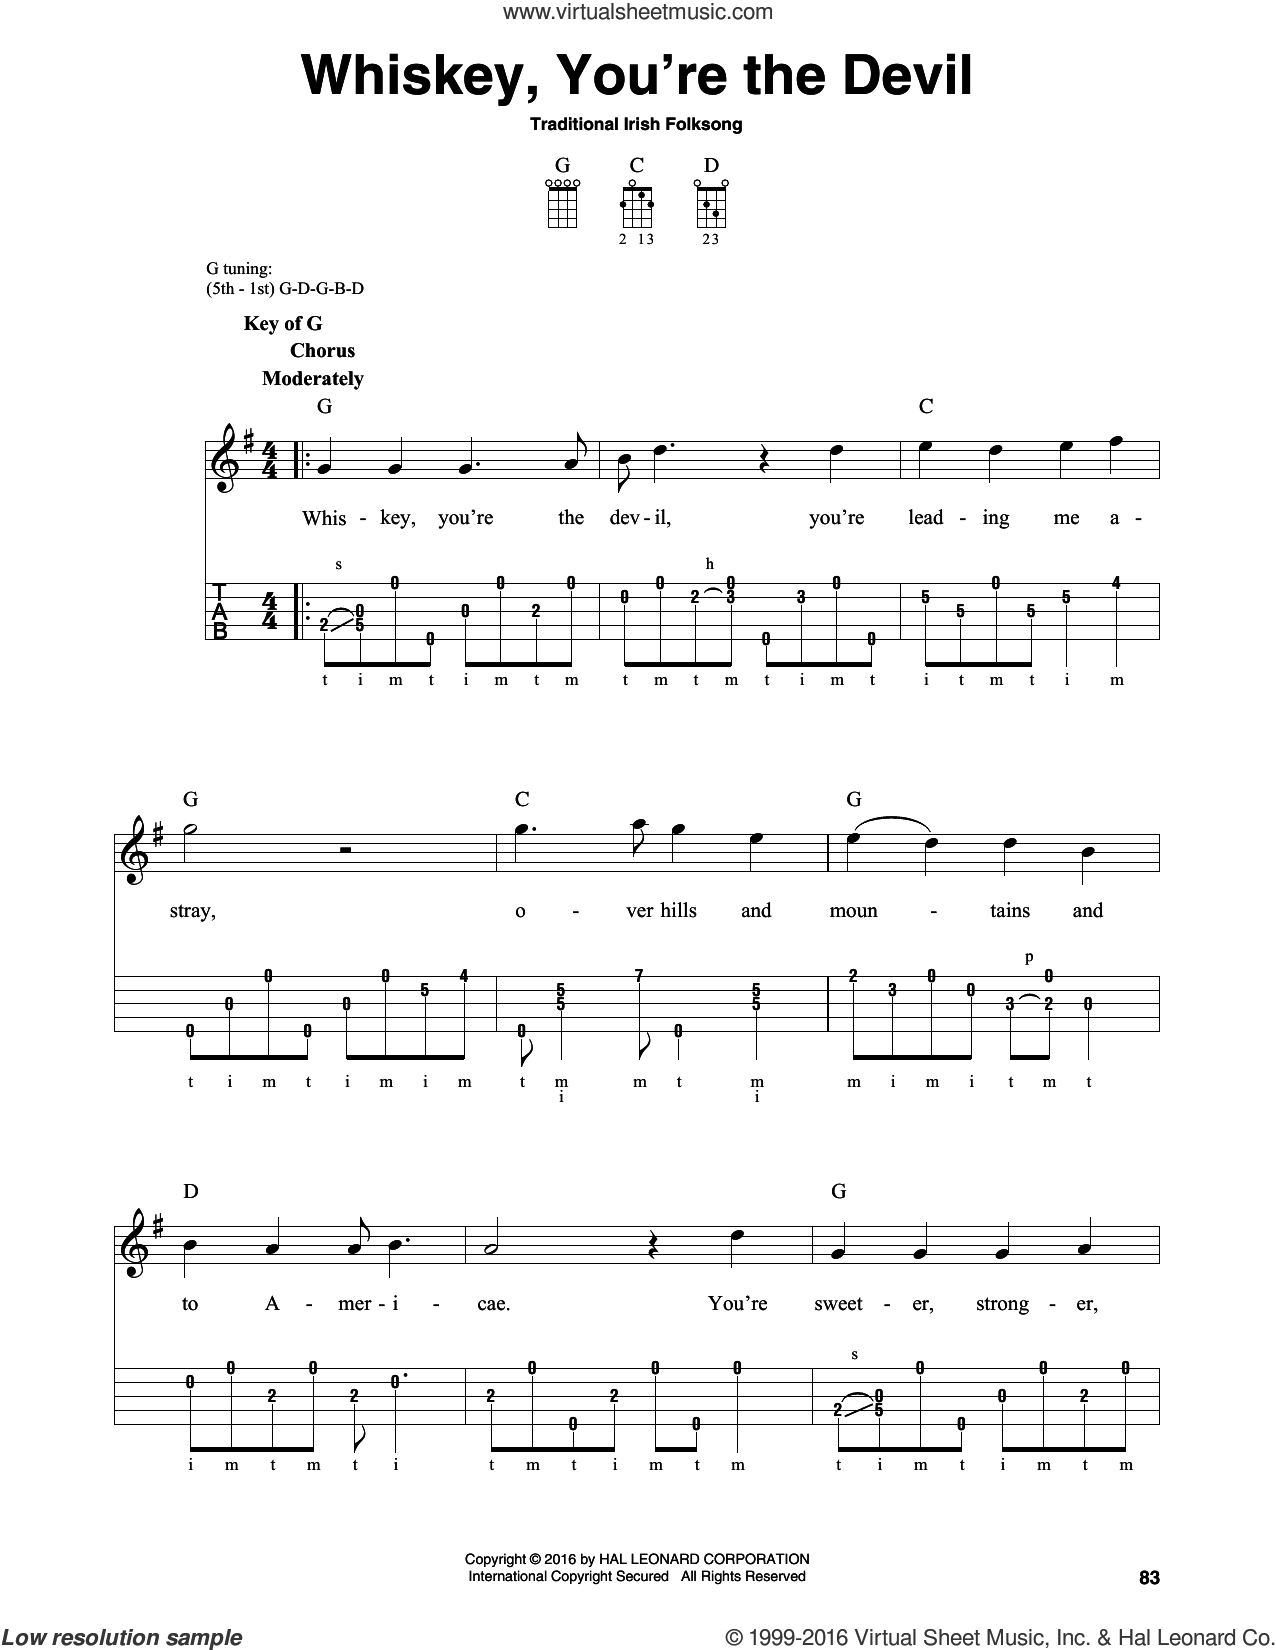 Whiskey, You're The Devil sheet music for banjo solo. Score Image Preview.